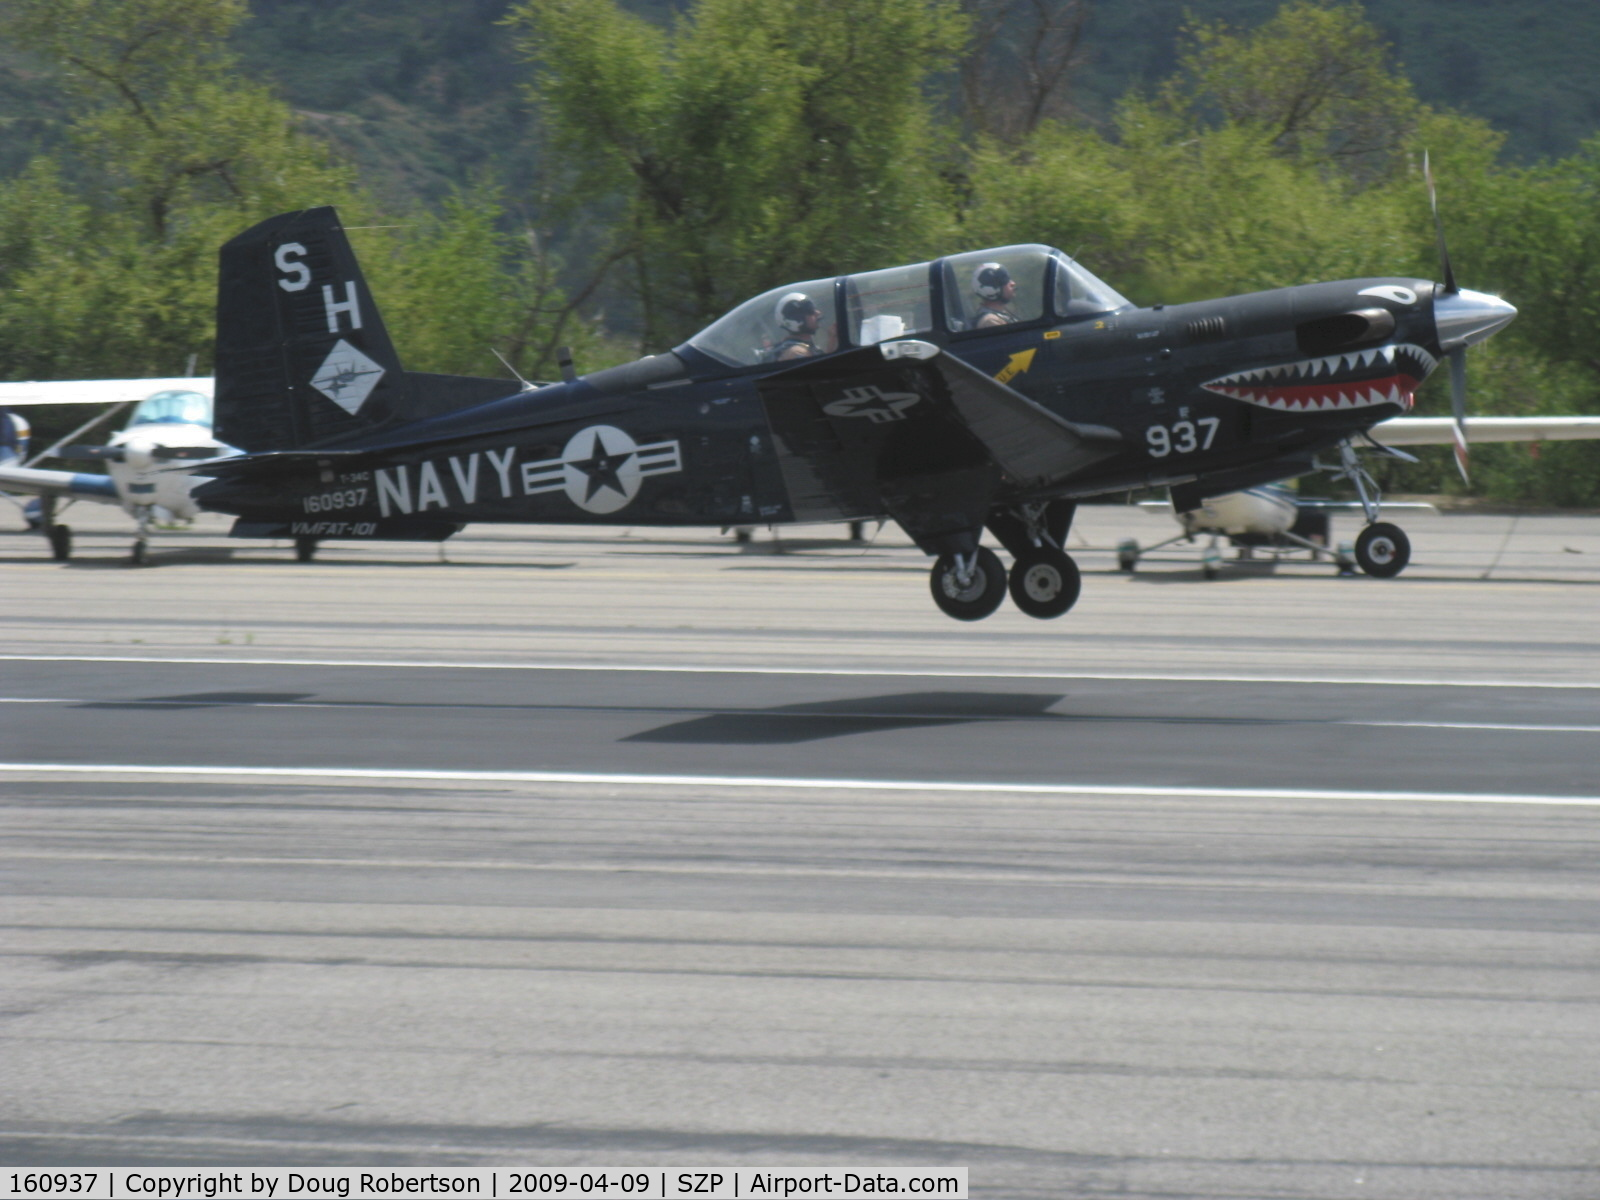 160937, Beech T-34C Turbo Mentor C/N GL-123, Beech T-34C TURBINE MENTOR Sierra Hotel of USMC VMFAT-101, one P&W(C)PT6A-25 400 shp turboprop, Returned to service 1998. Landing Rwy 22.